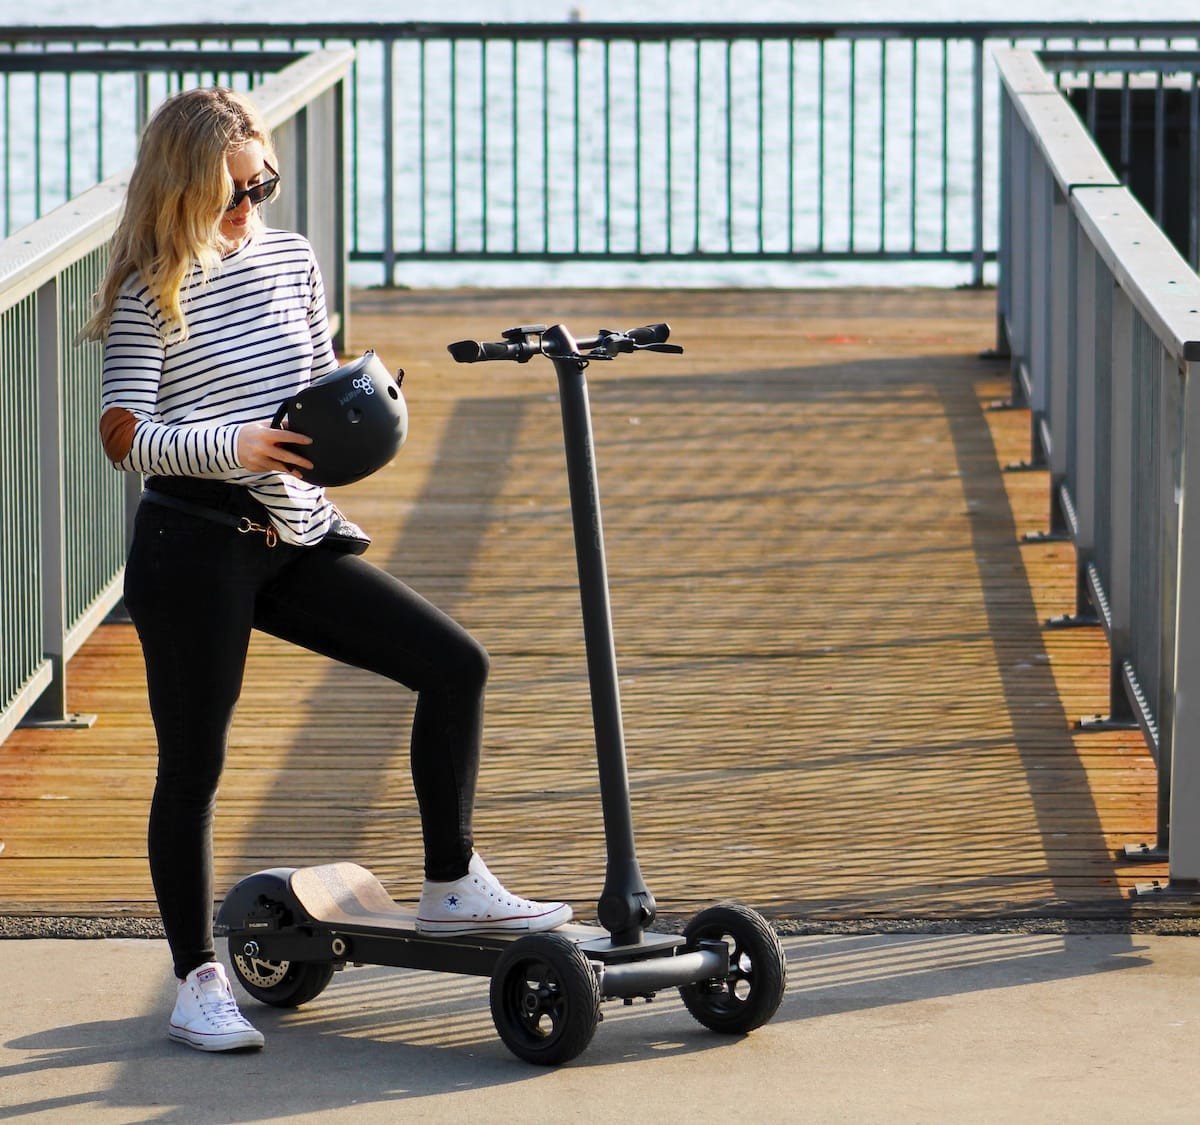 CycleBoard Elite electric street vehicle provides a great combo of safety and fun